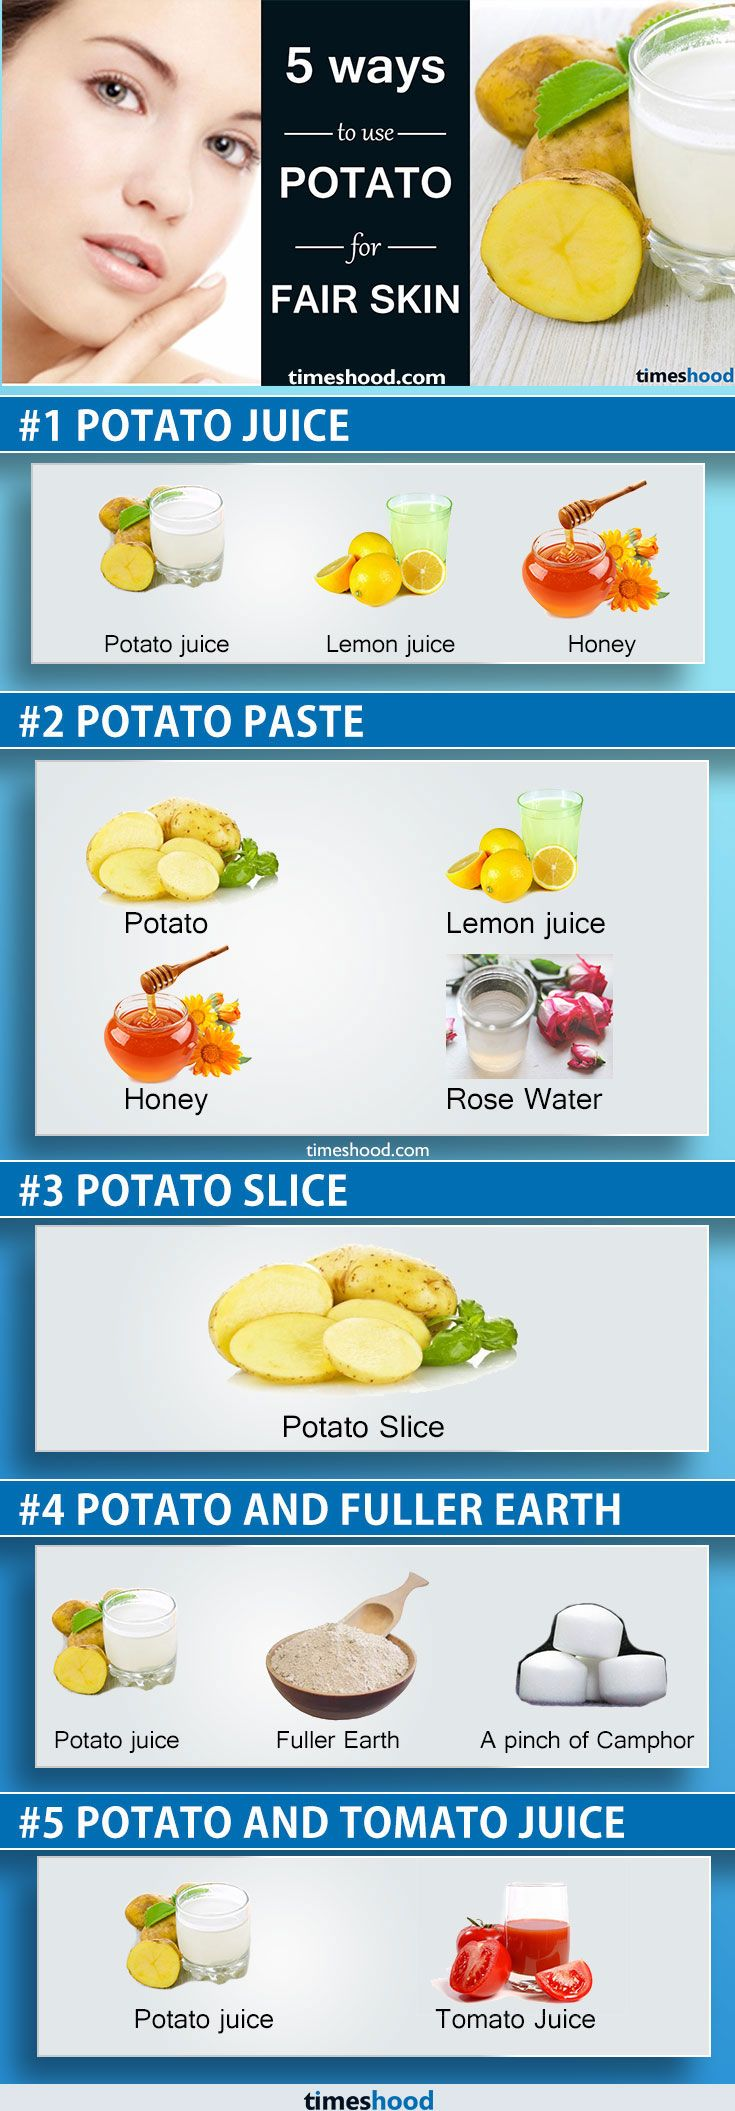 How to get rid of pimples, acne? Use Potato mask for fair skin. Natural remedy to get fair skin. Best skin care remedies. Healthy Home remedies for glowing skin. Check out: https://timeshood.com/get-fair-skin-with-potato/